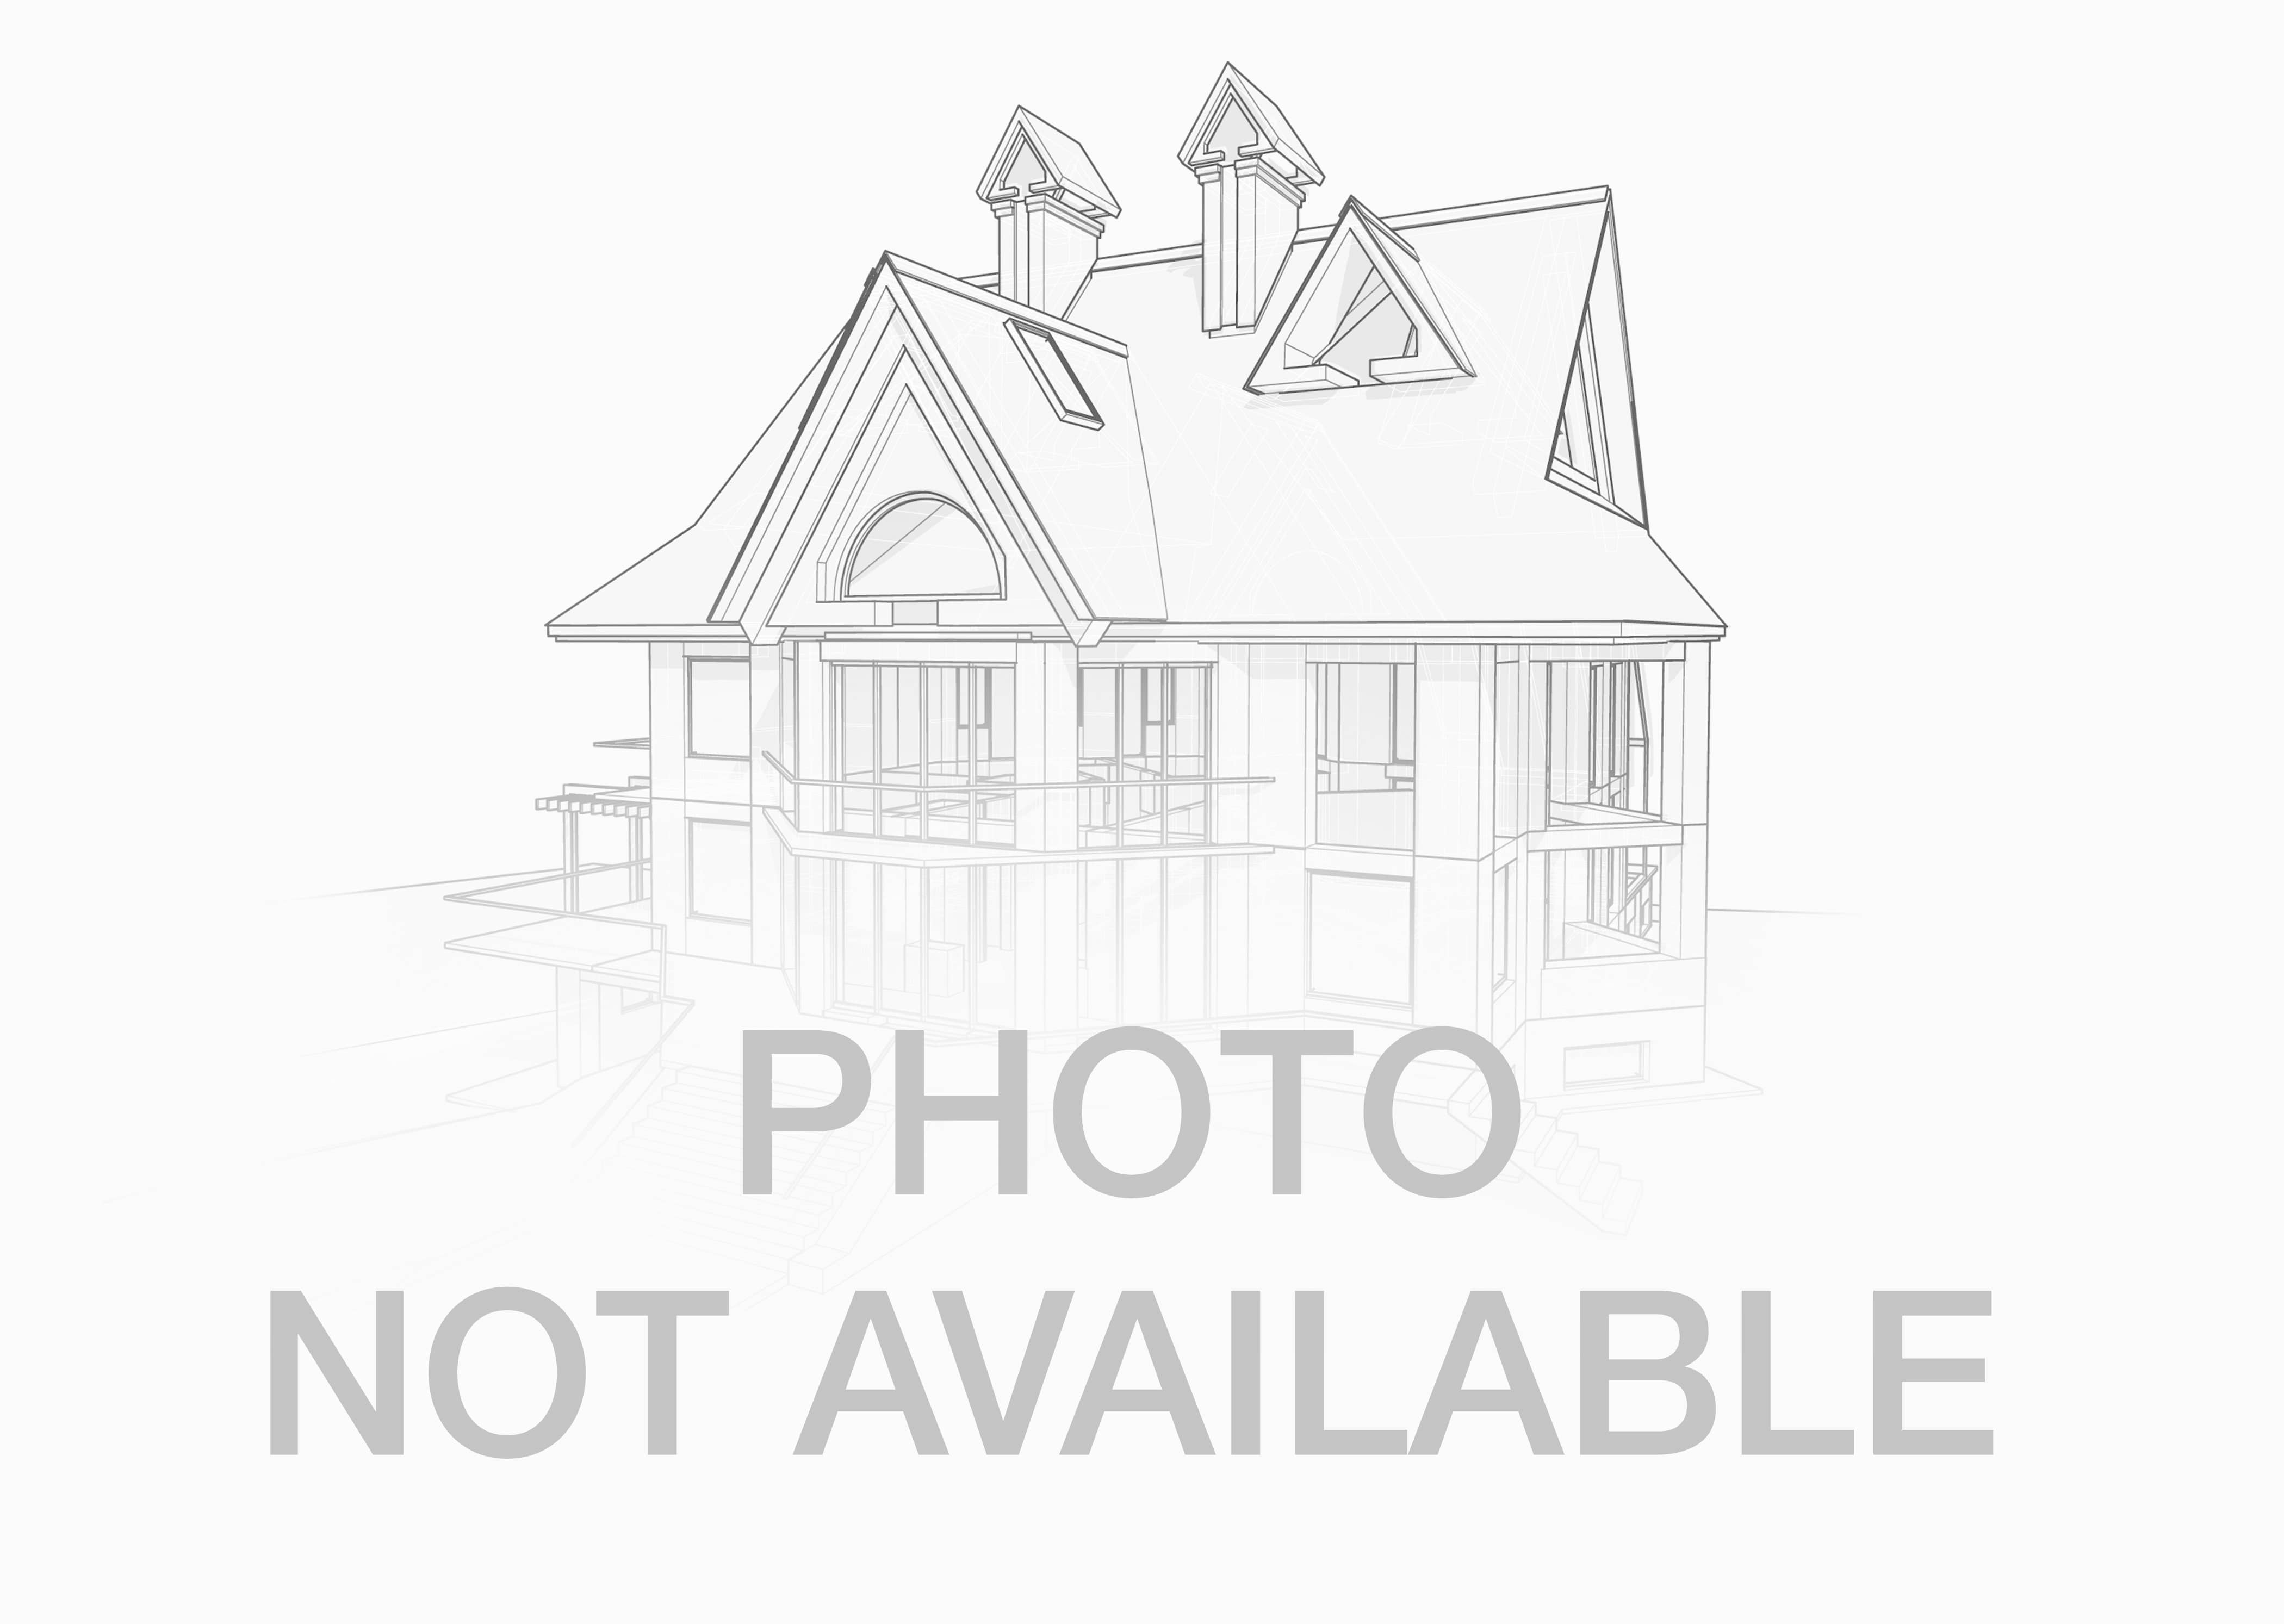 Quarryville PA Residential Homes For Sale